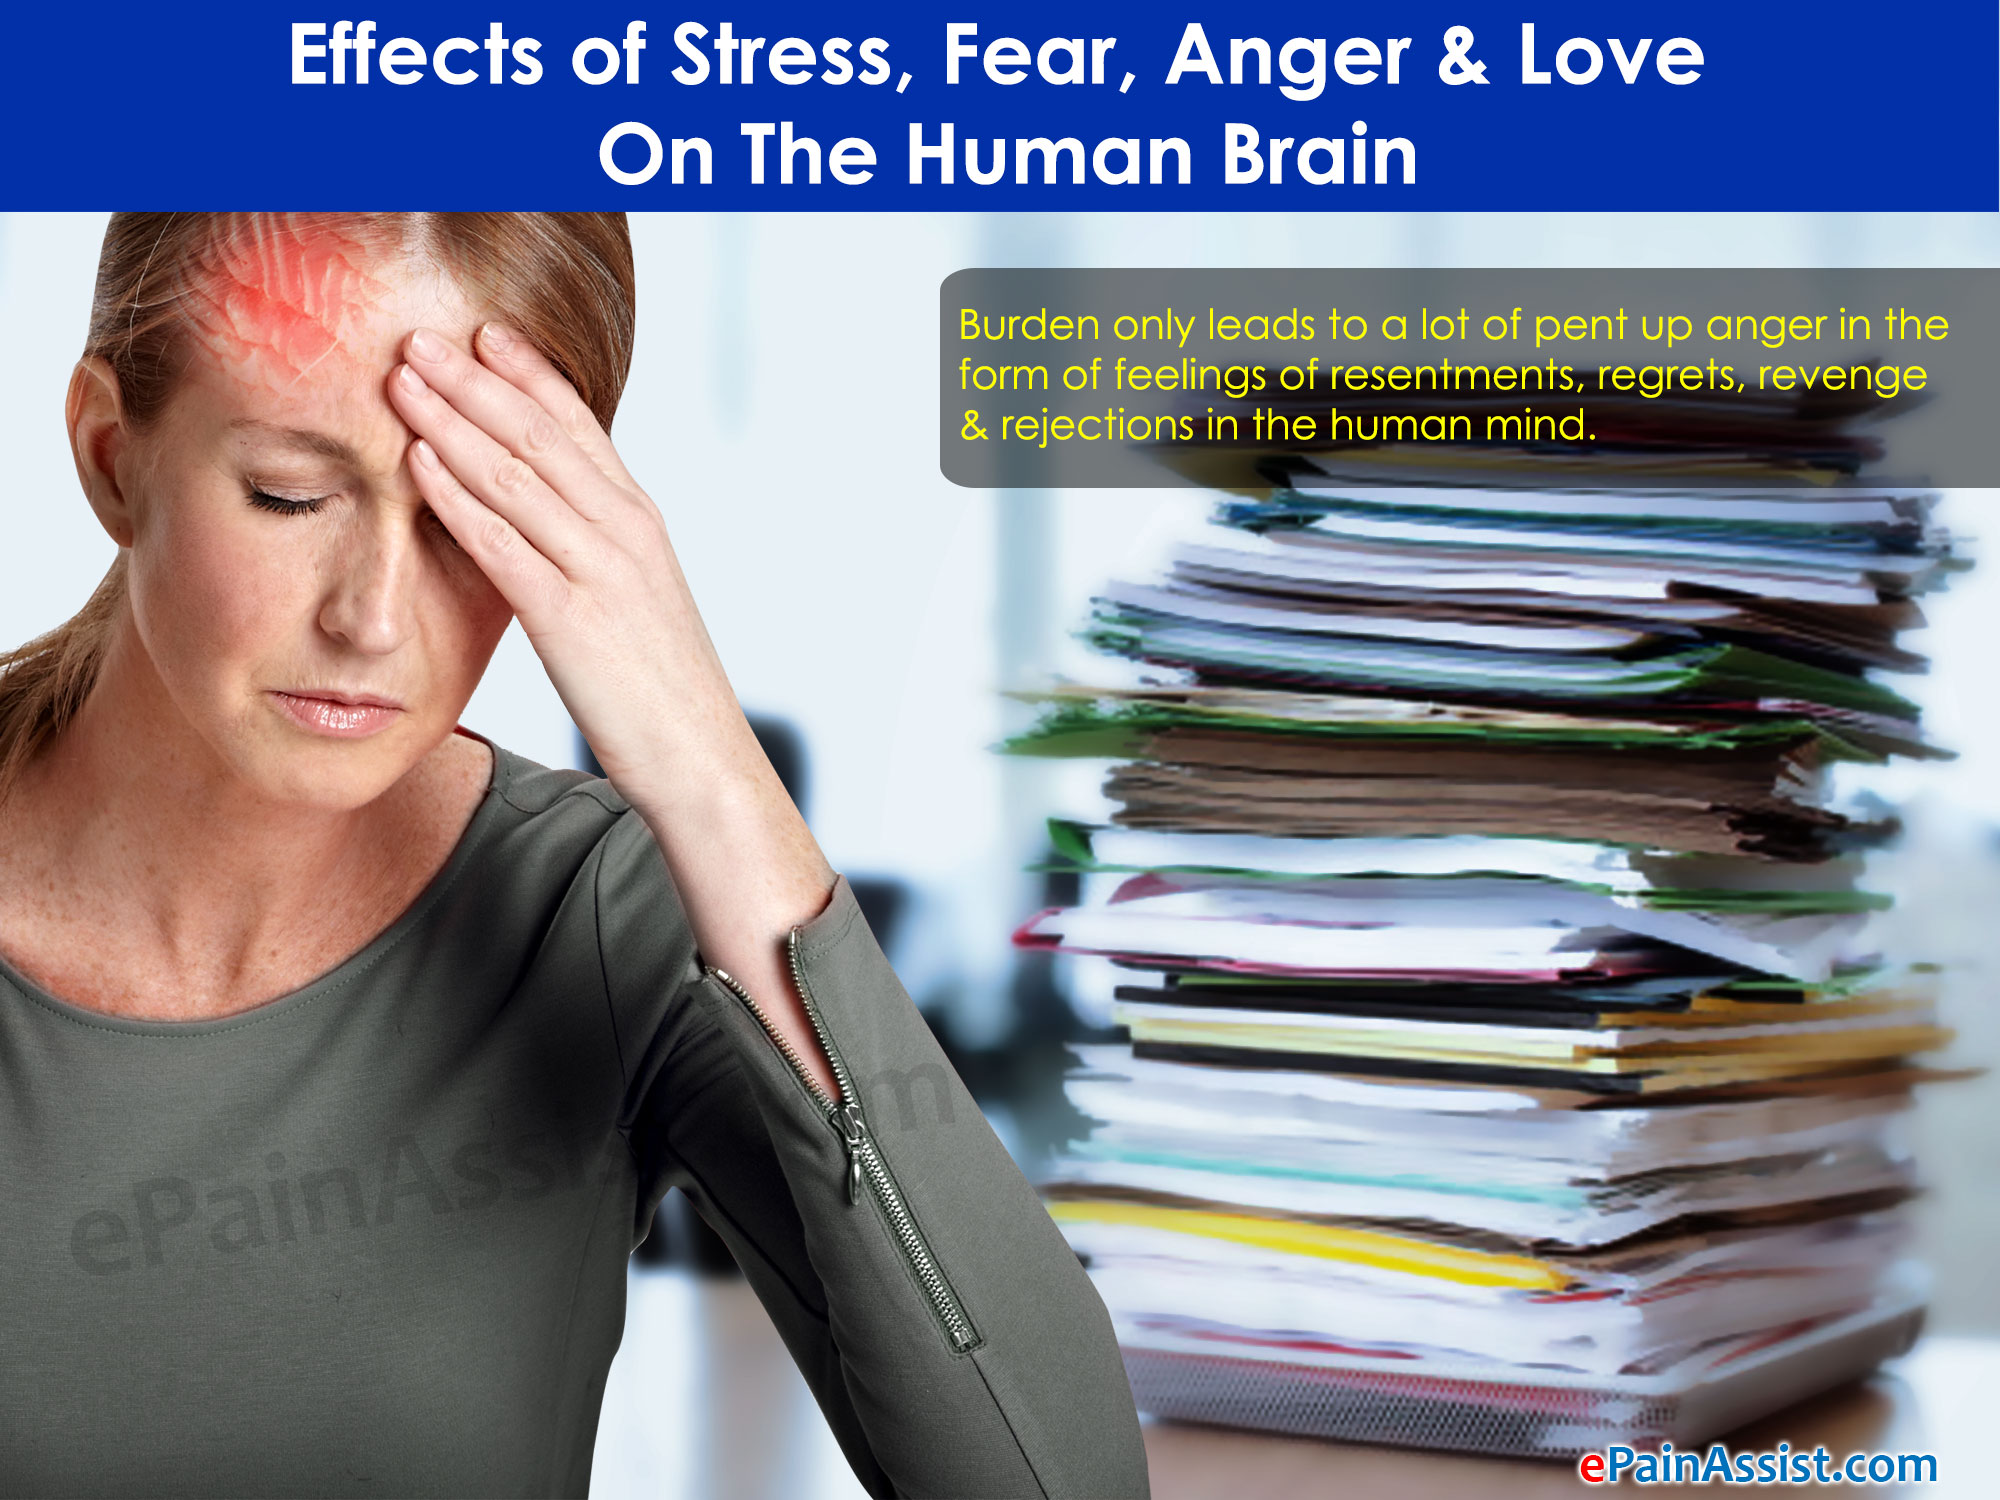 Effects of Stress, Fear, Anger and Love On The Human Brain